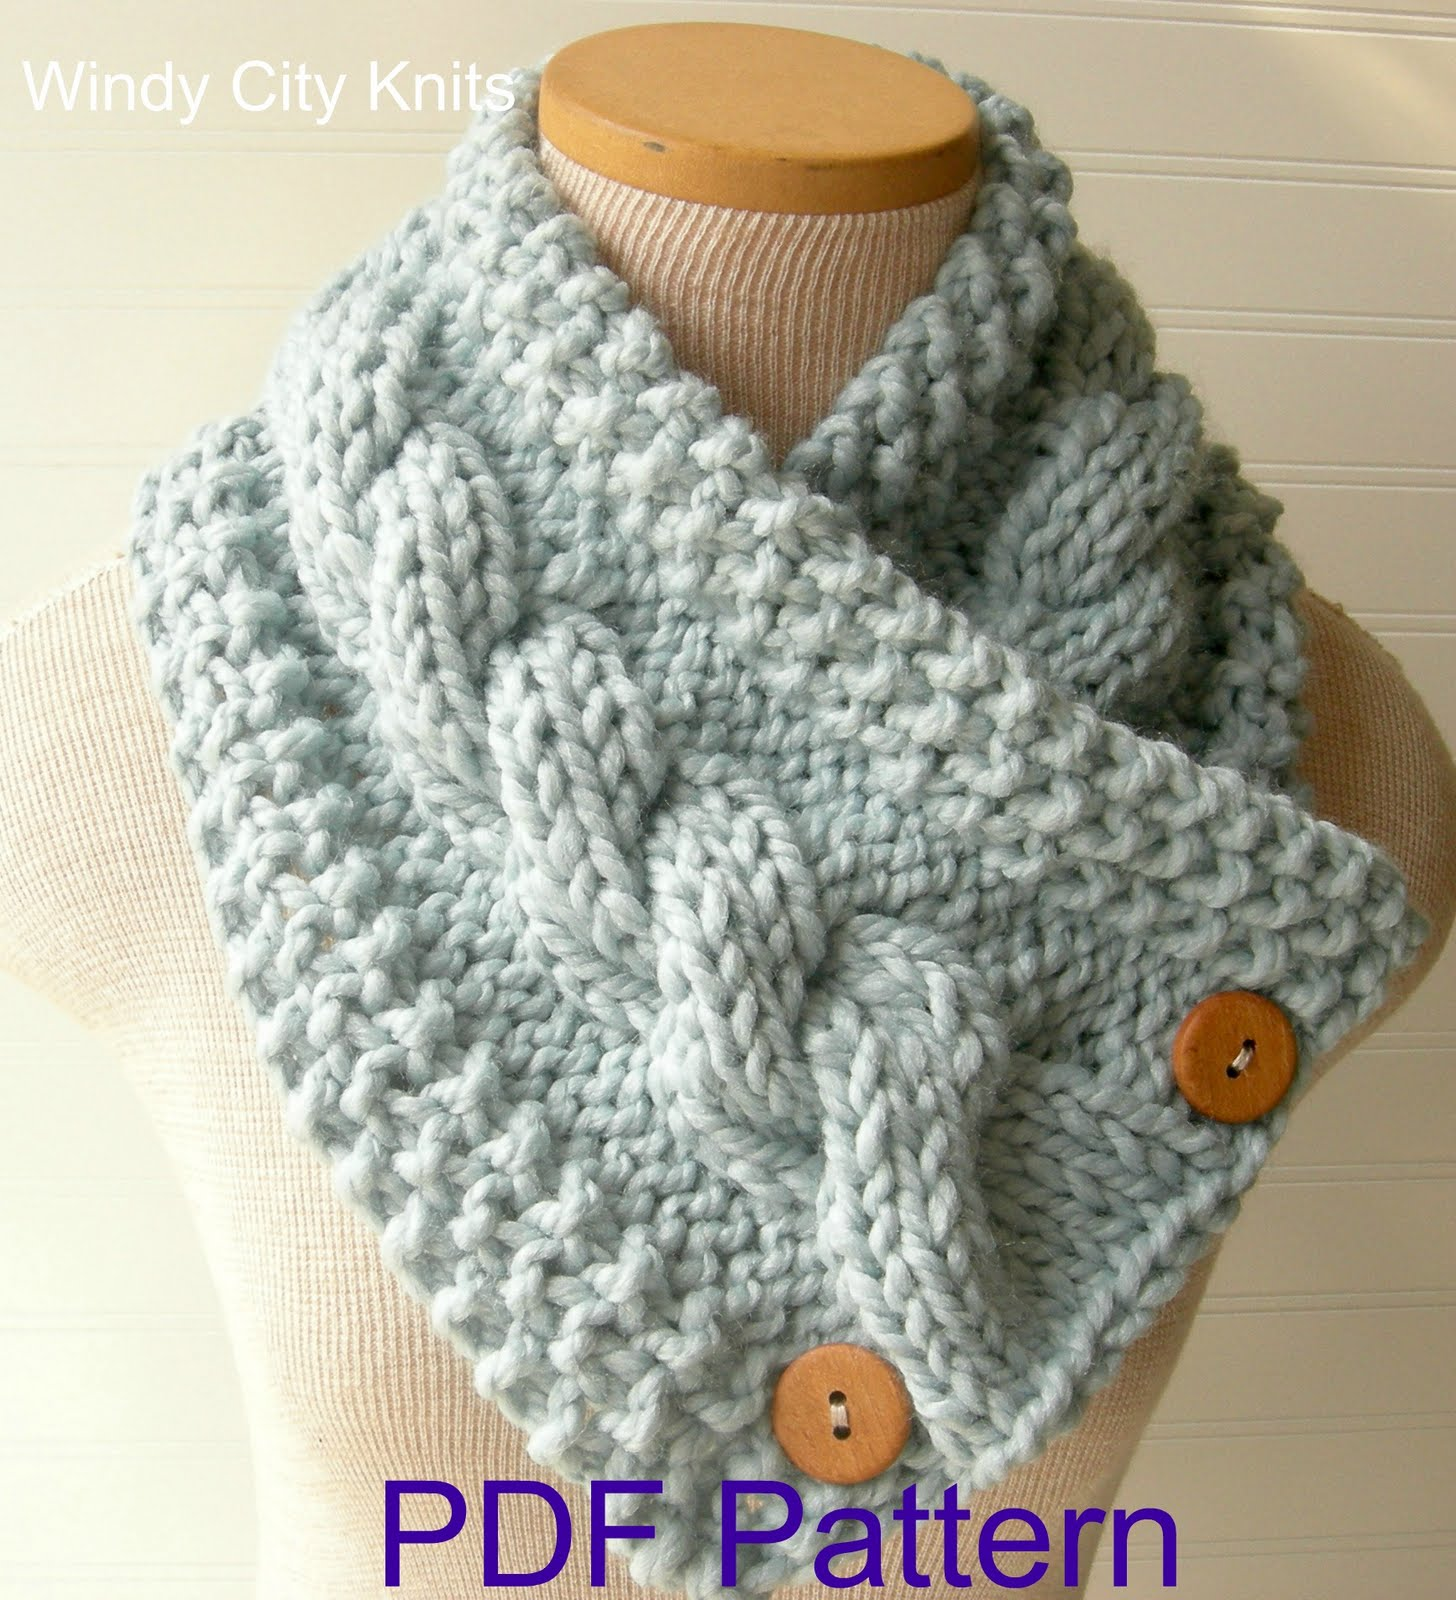 windycityknits knit cable cowl scarf pattern pdf